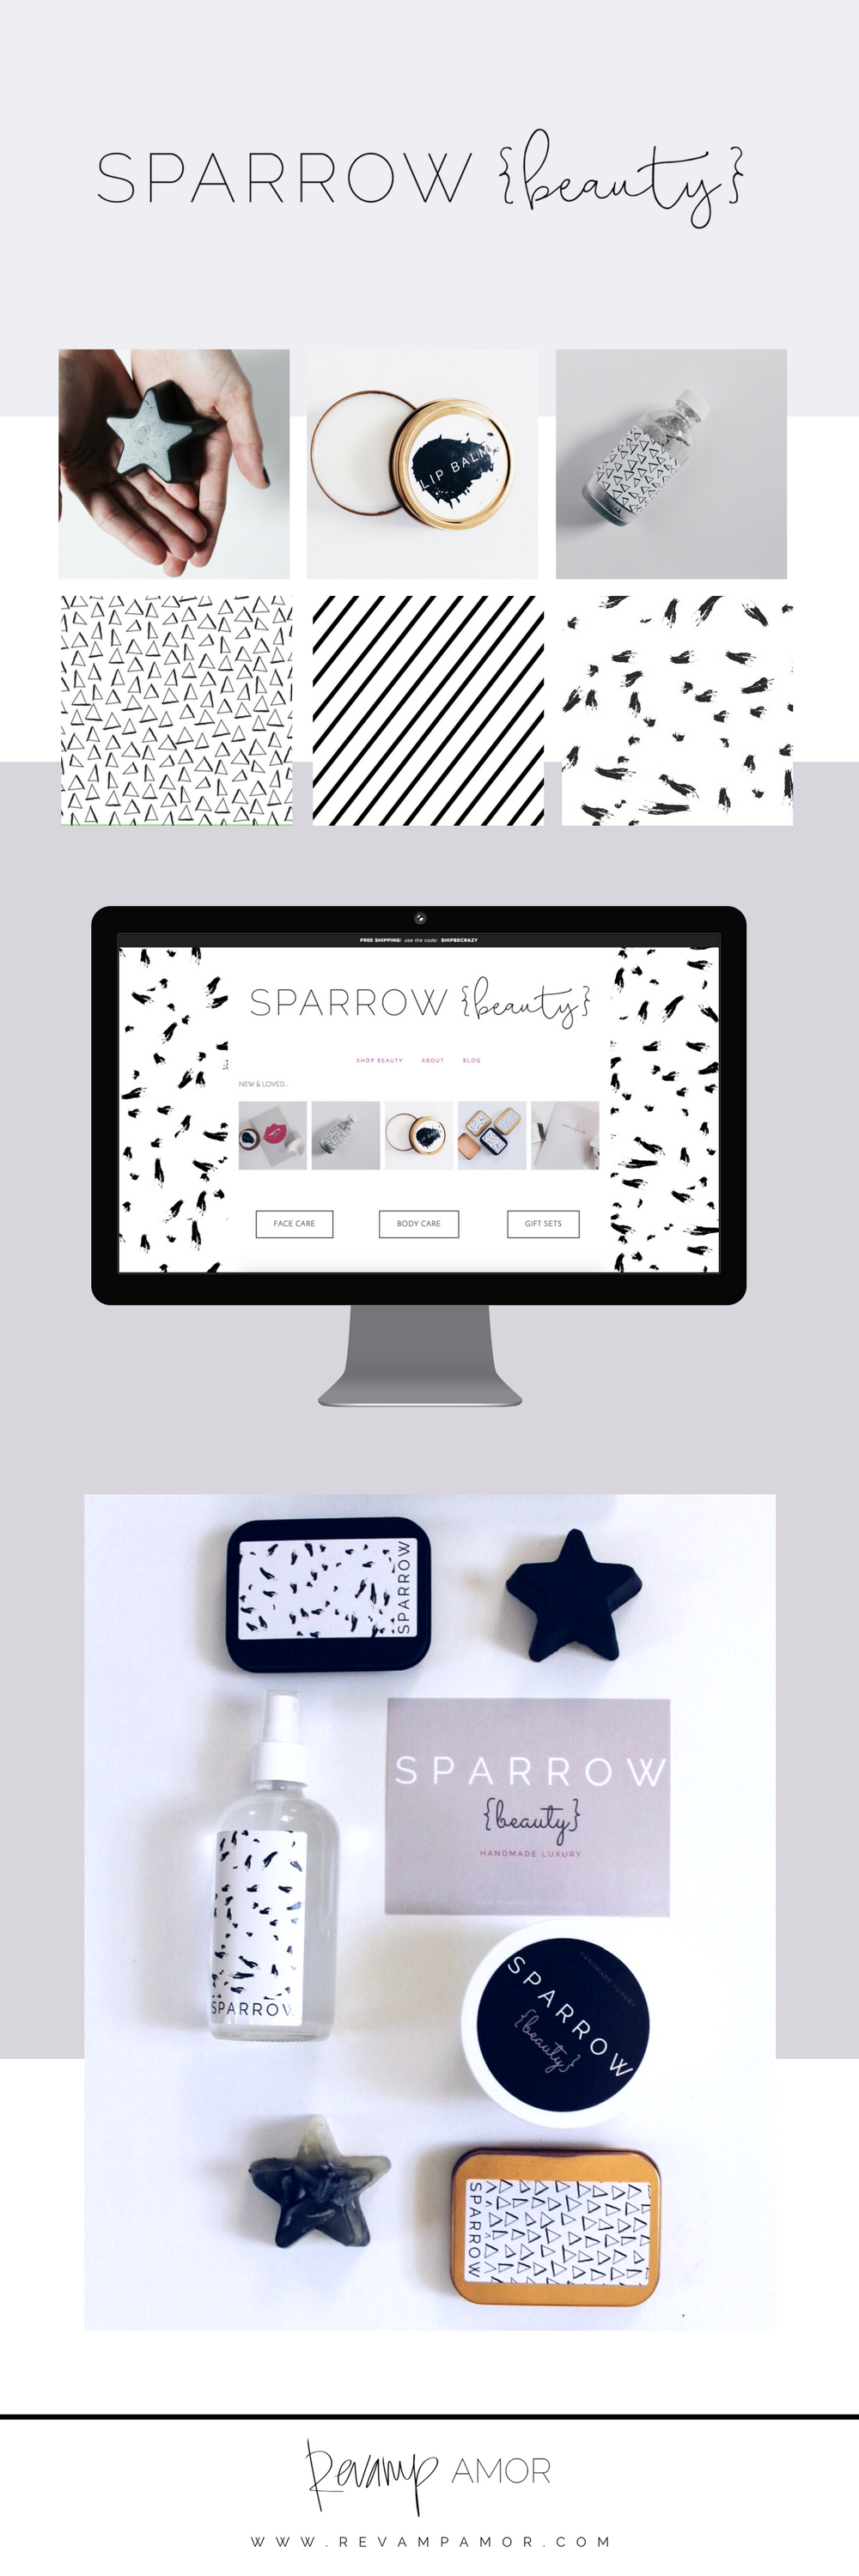 brand identity and web design from the Revamp, Amor Design Studio